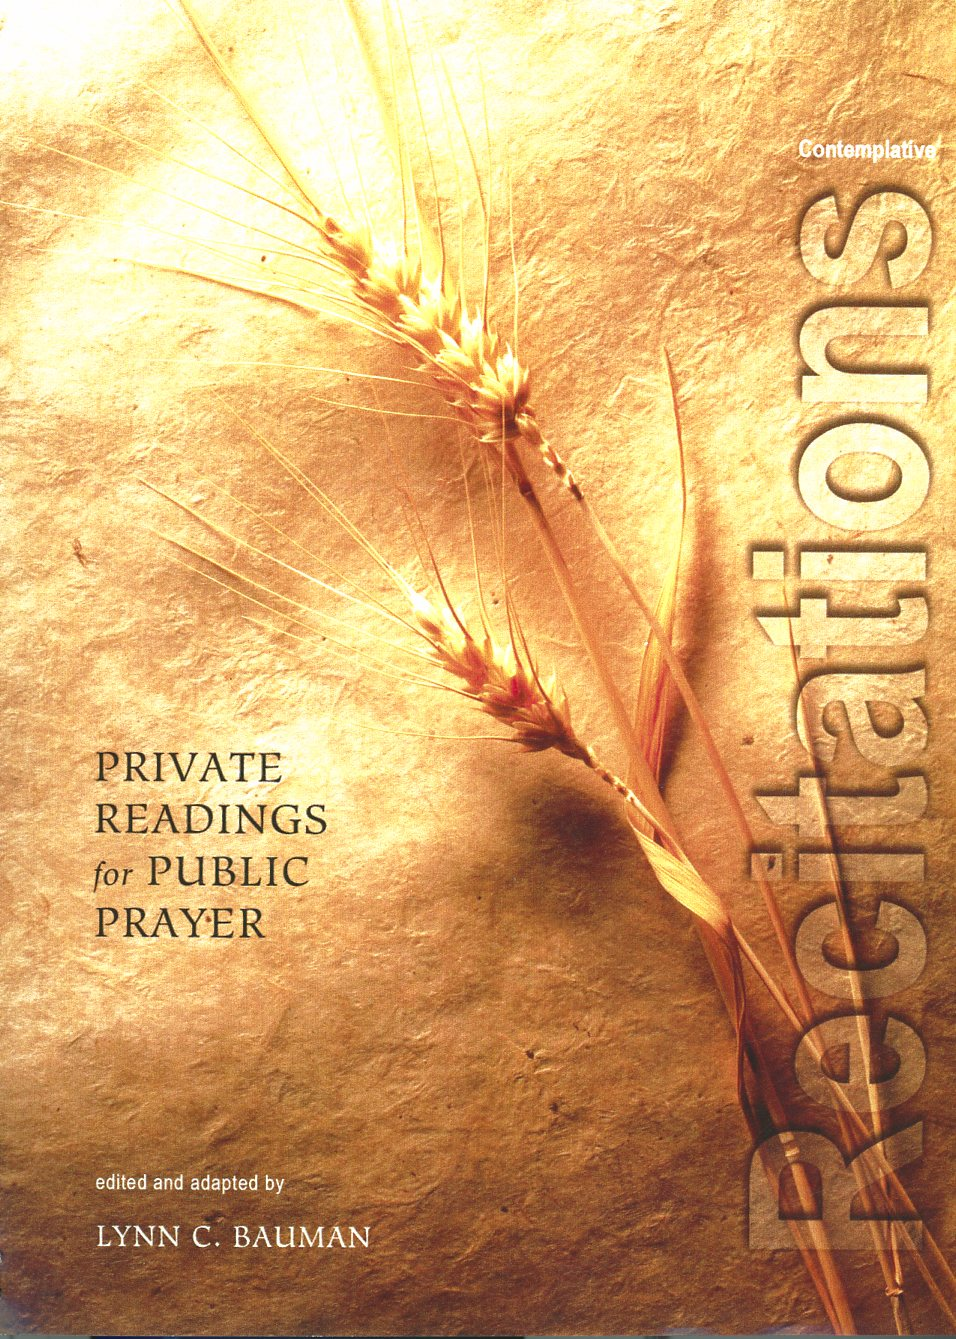 Recitations: Private Readings for Public Prayer - edited by Lynn C. Bauman$25.00 includes shipping and handlingThe poet's message is a prophetic voice sent into our modern world to bring us news of ourselves and of Ultimate Reality. When the poet speaks we are hearing the angelic voice guiding the spiritual pilgrim across the fierce landscapes of this world toward humanity's destiny and homeland. The poetry in this volume has been selected from across traditions and focuses upon the heart of mystical and contemplative experience. Each poem has been edited and arranged for use in public gatherings for contemplative prayer as well as for private prayer and meditation.